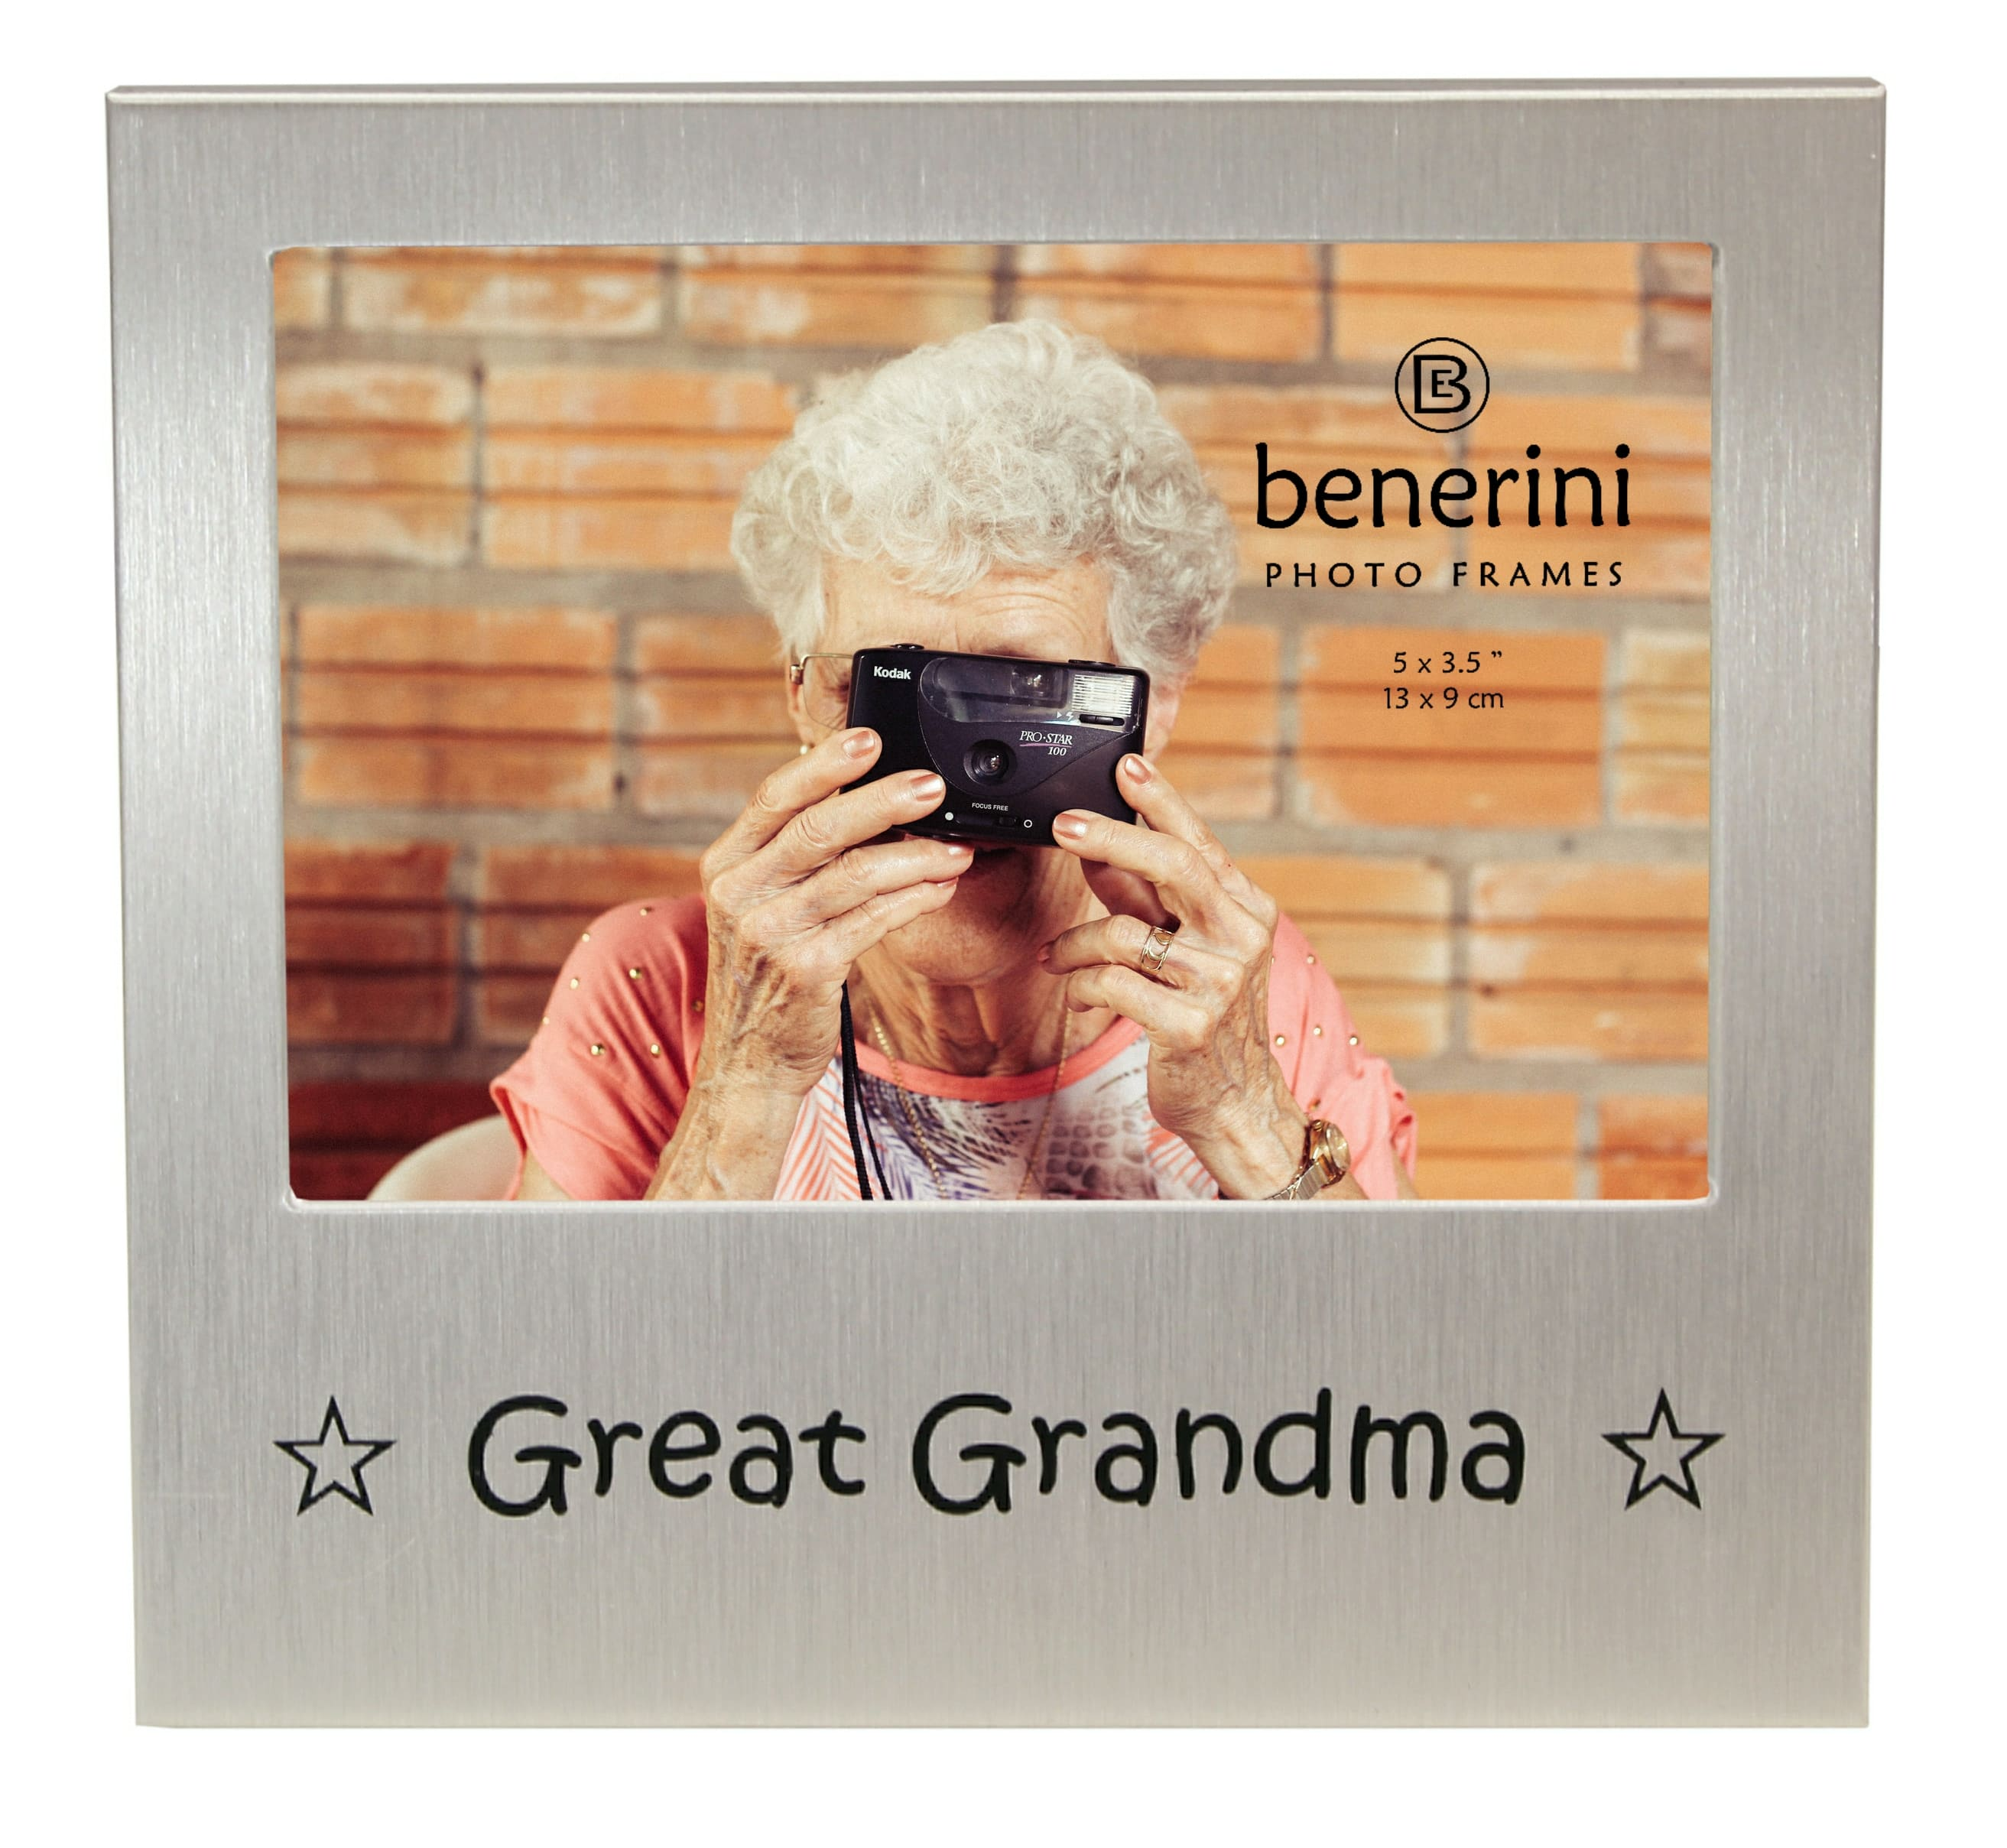 Great Grandma Photo Frame  5 X 35 (13 X